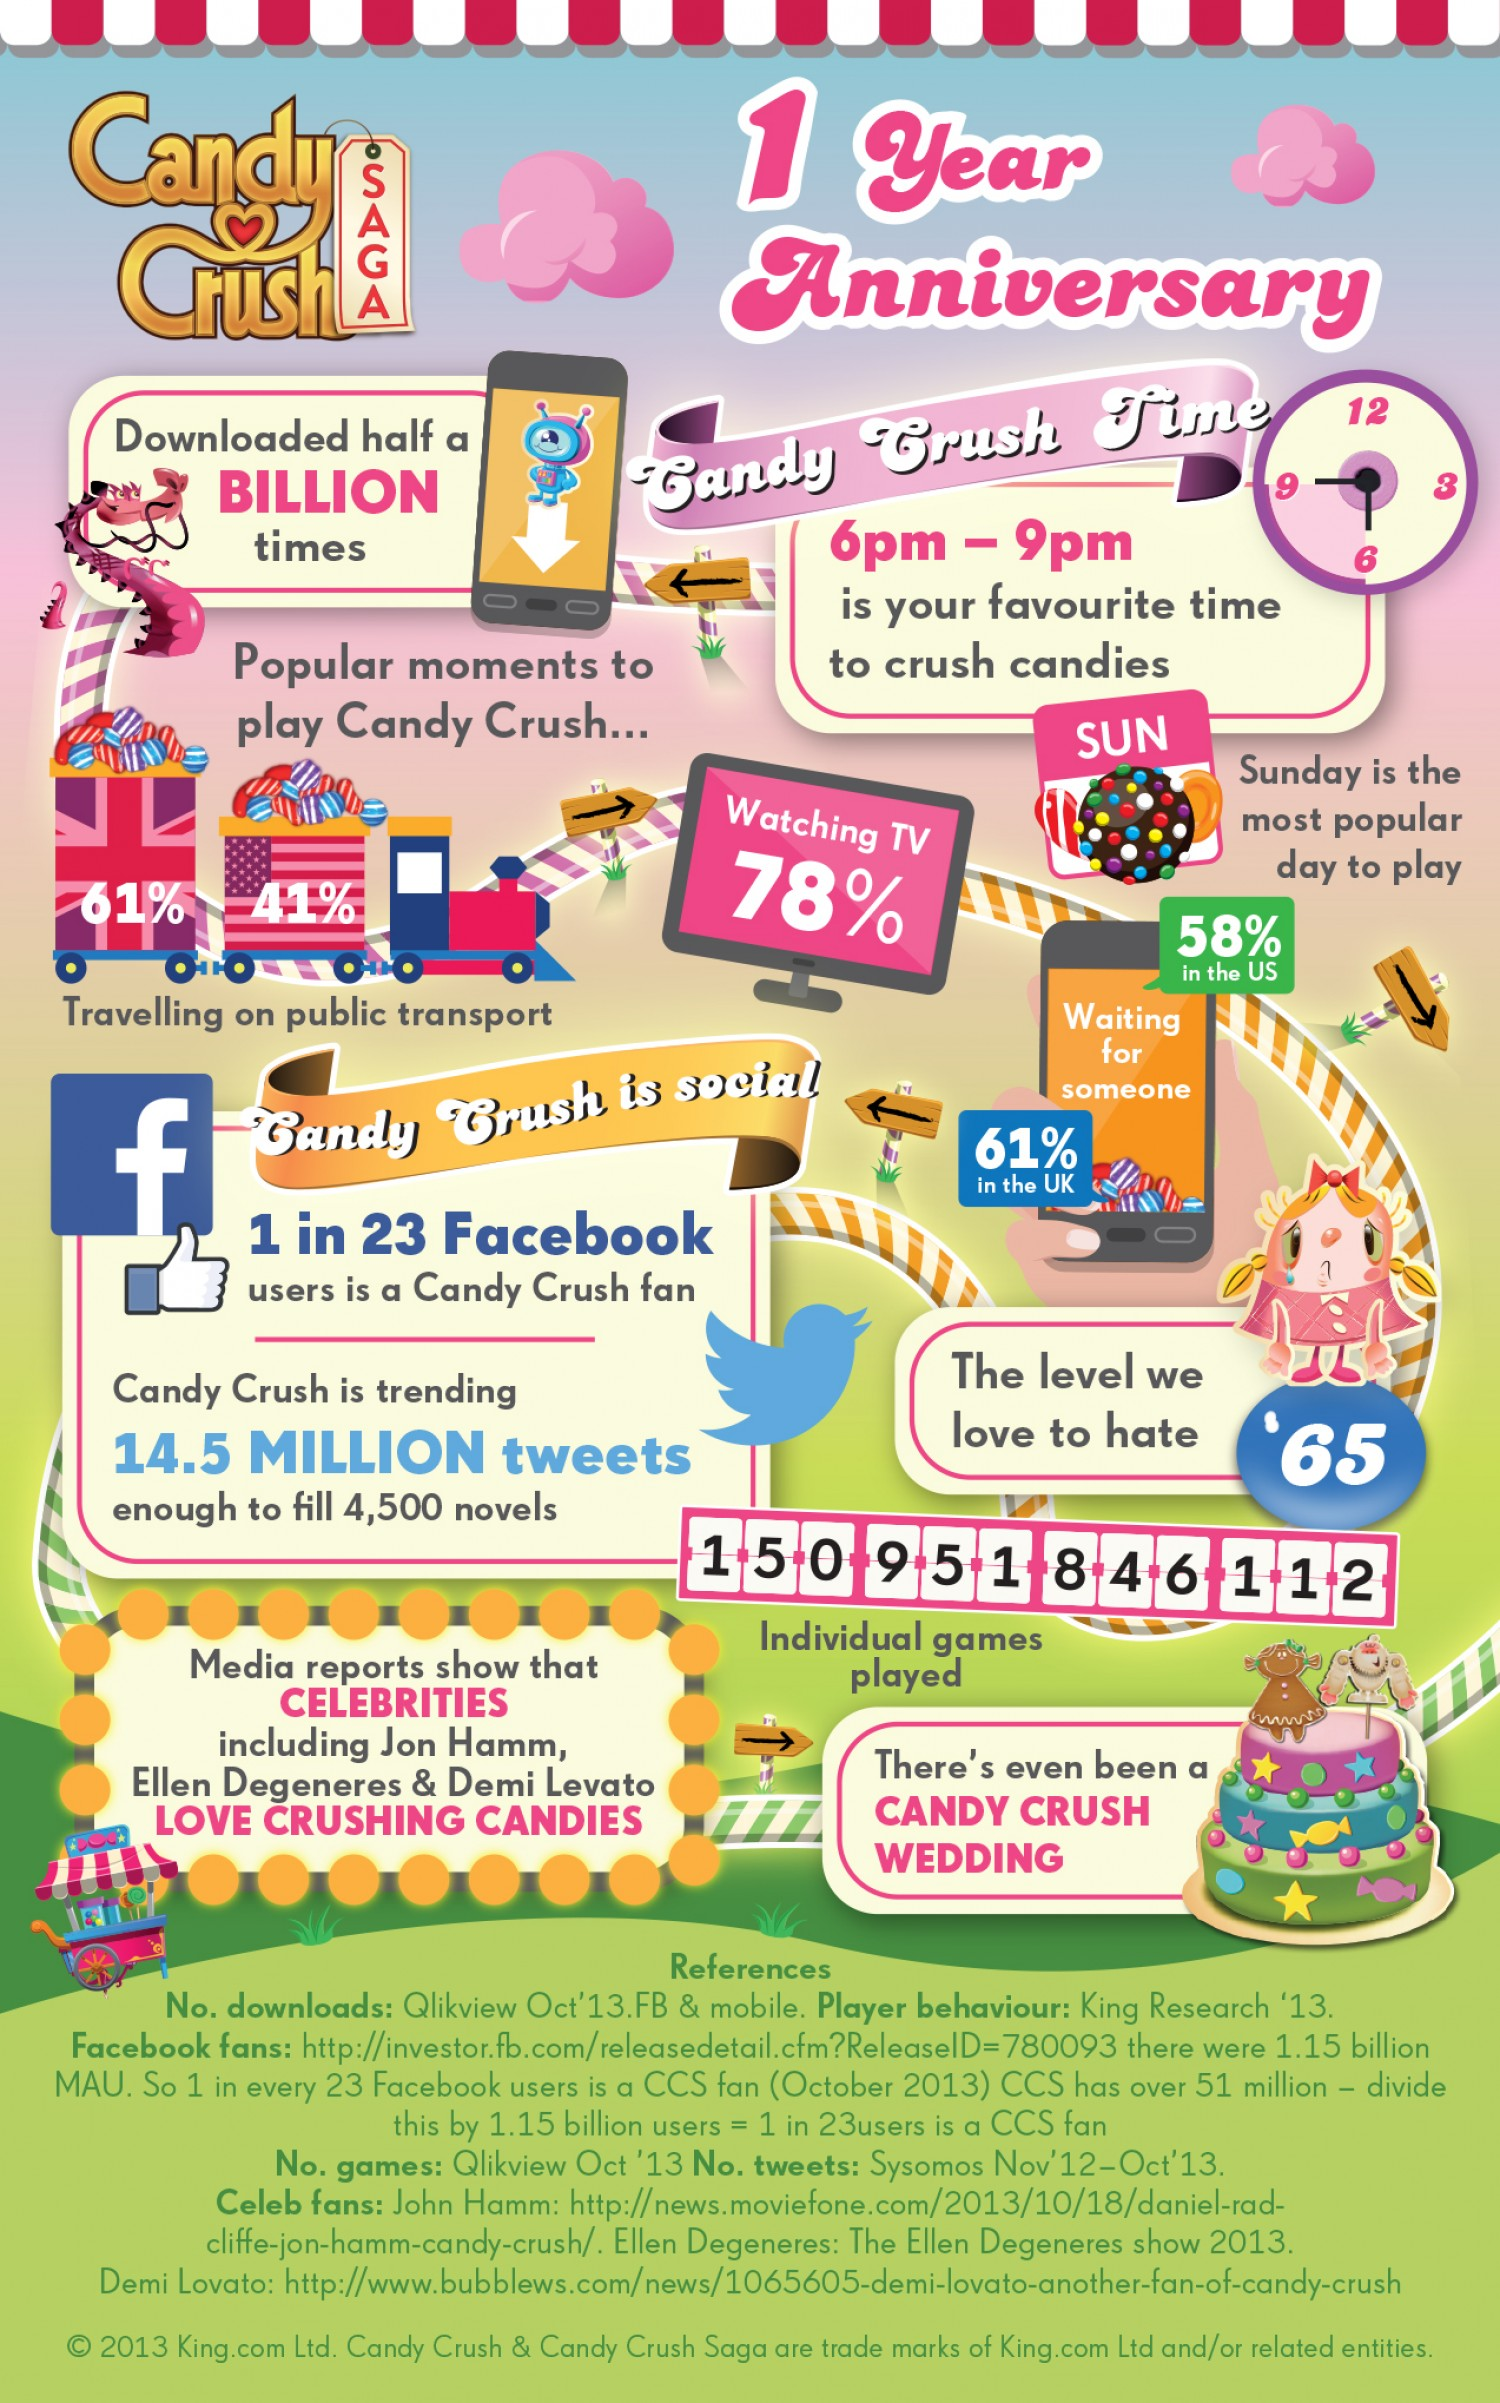 Candy crush 1 year anniversary